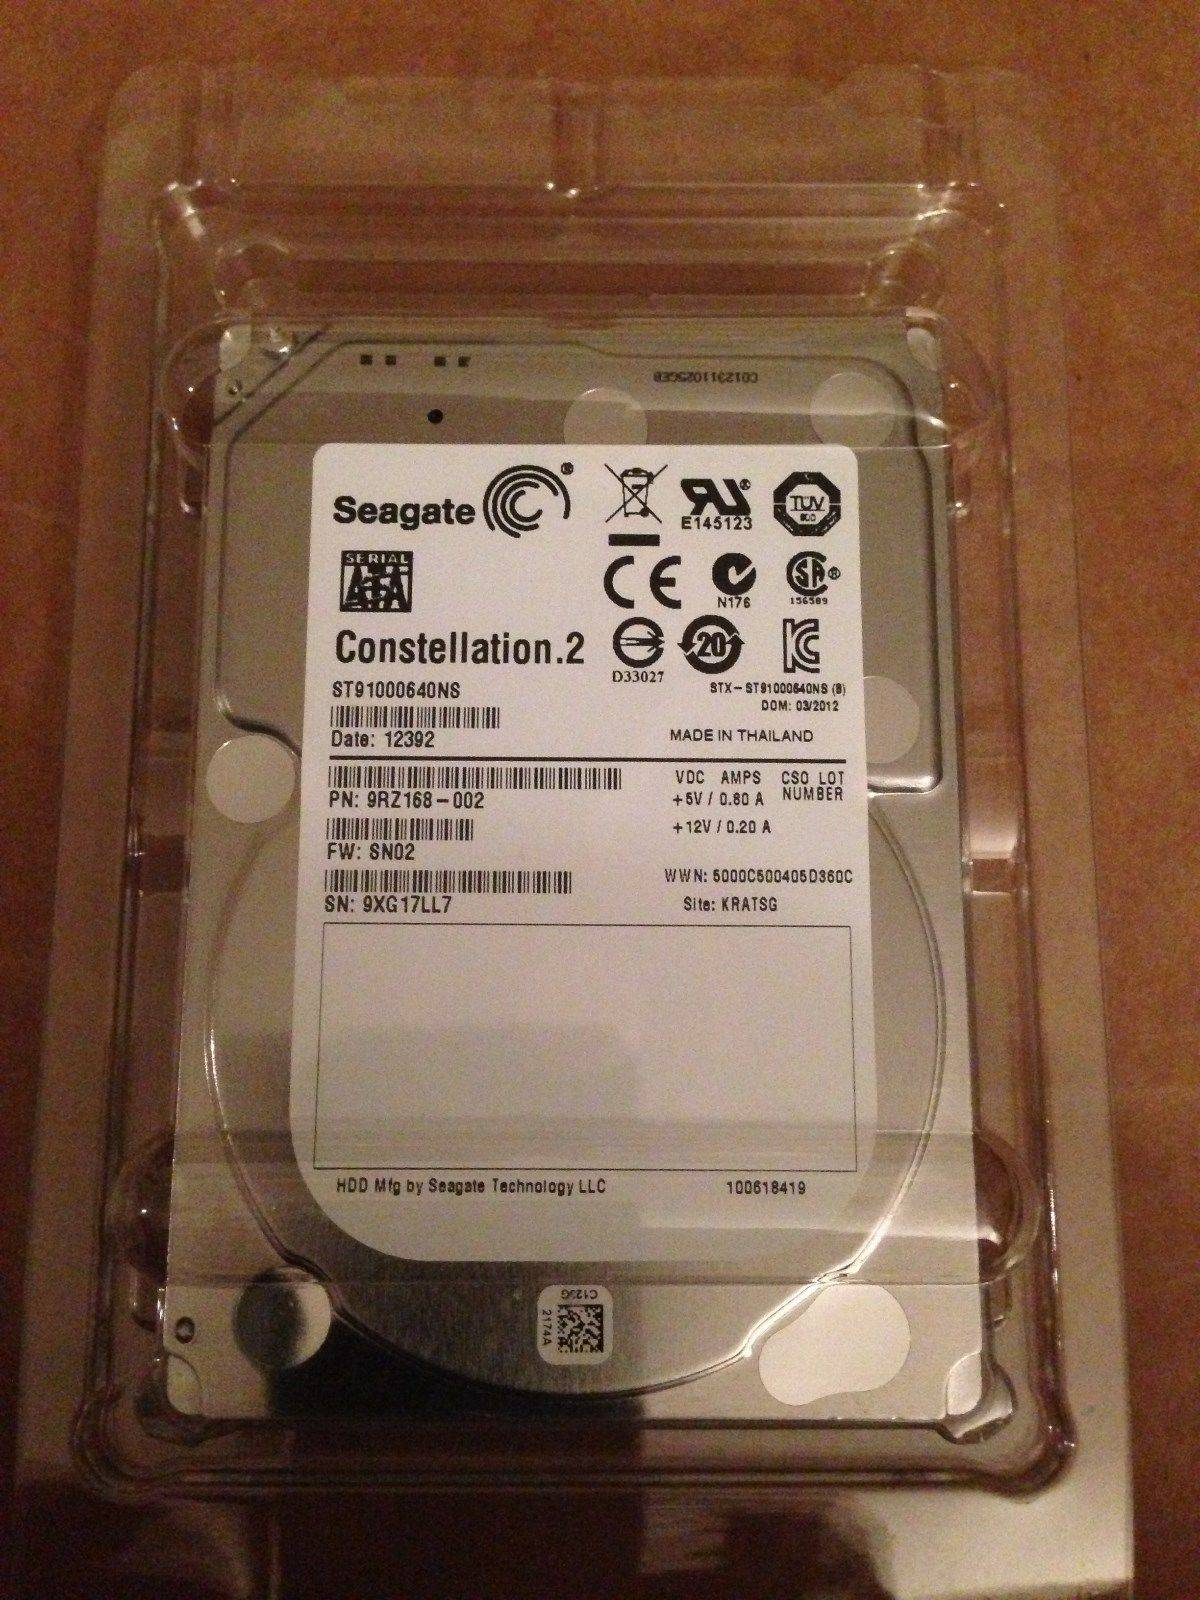 Seagate Constellation.2 ST91000640NS 1 TB 7200RPM SATA 6Gb/s 64MB Cache 2.5-Inch